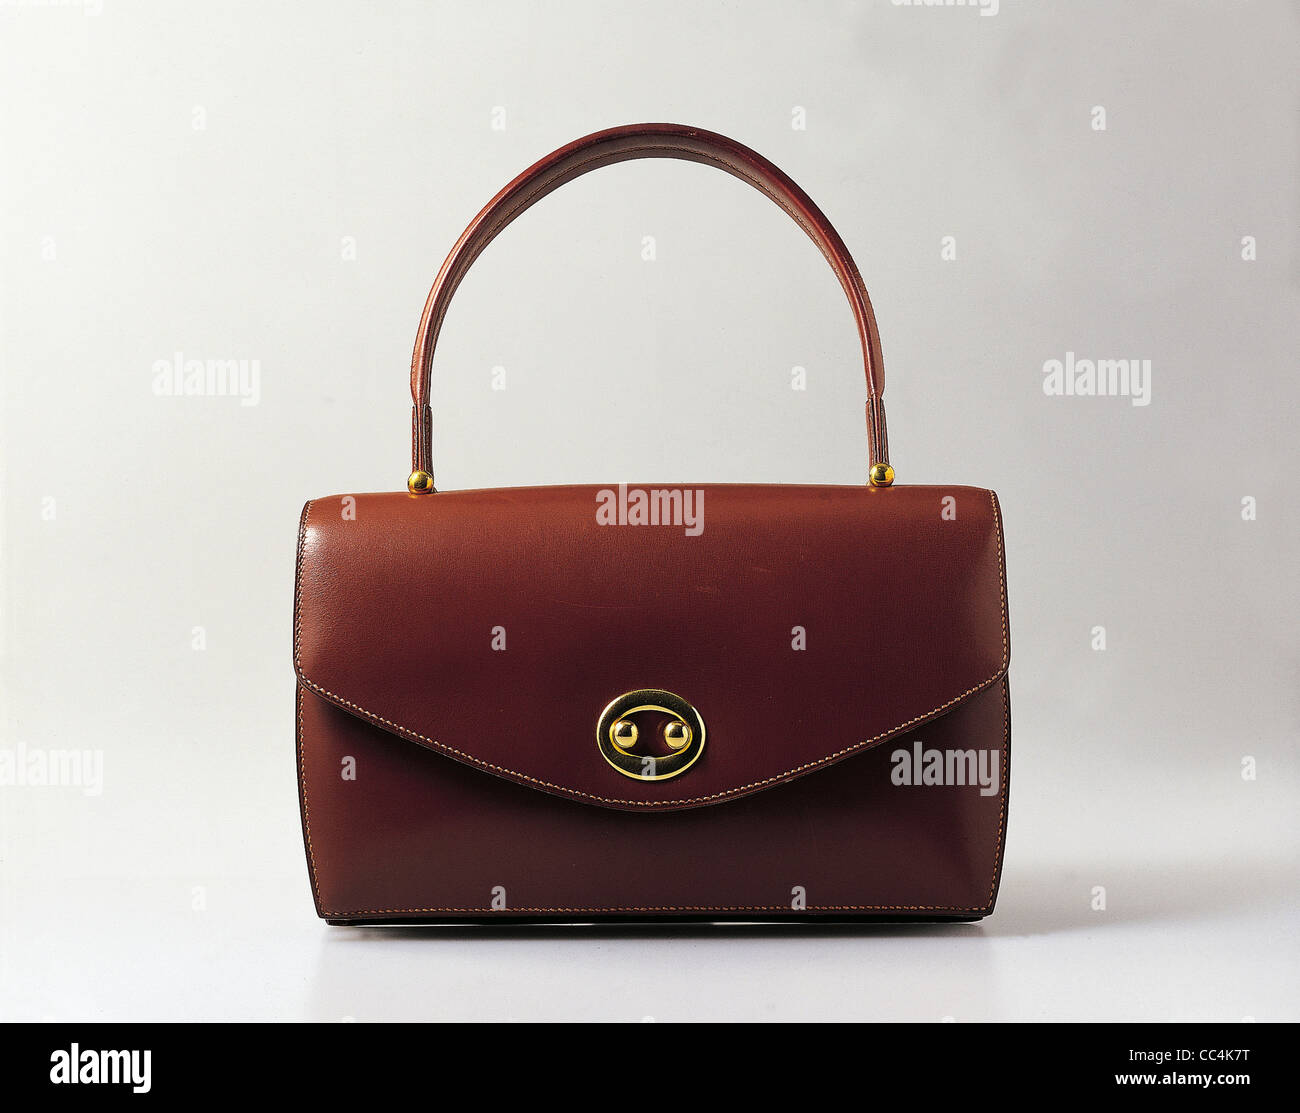 Accessori moda: borse di Hermes Kelly Bag Immagini Stock